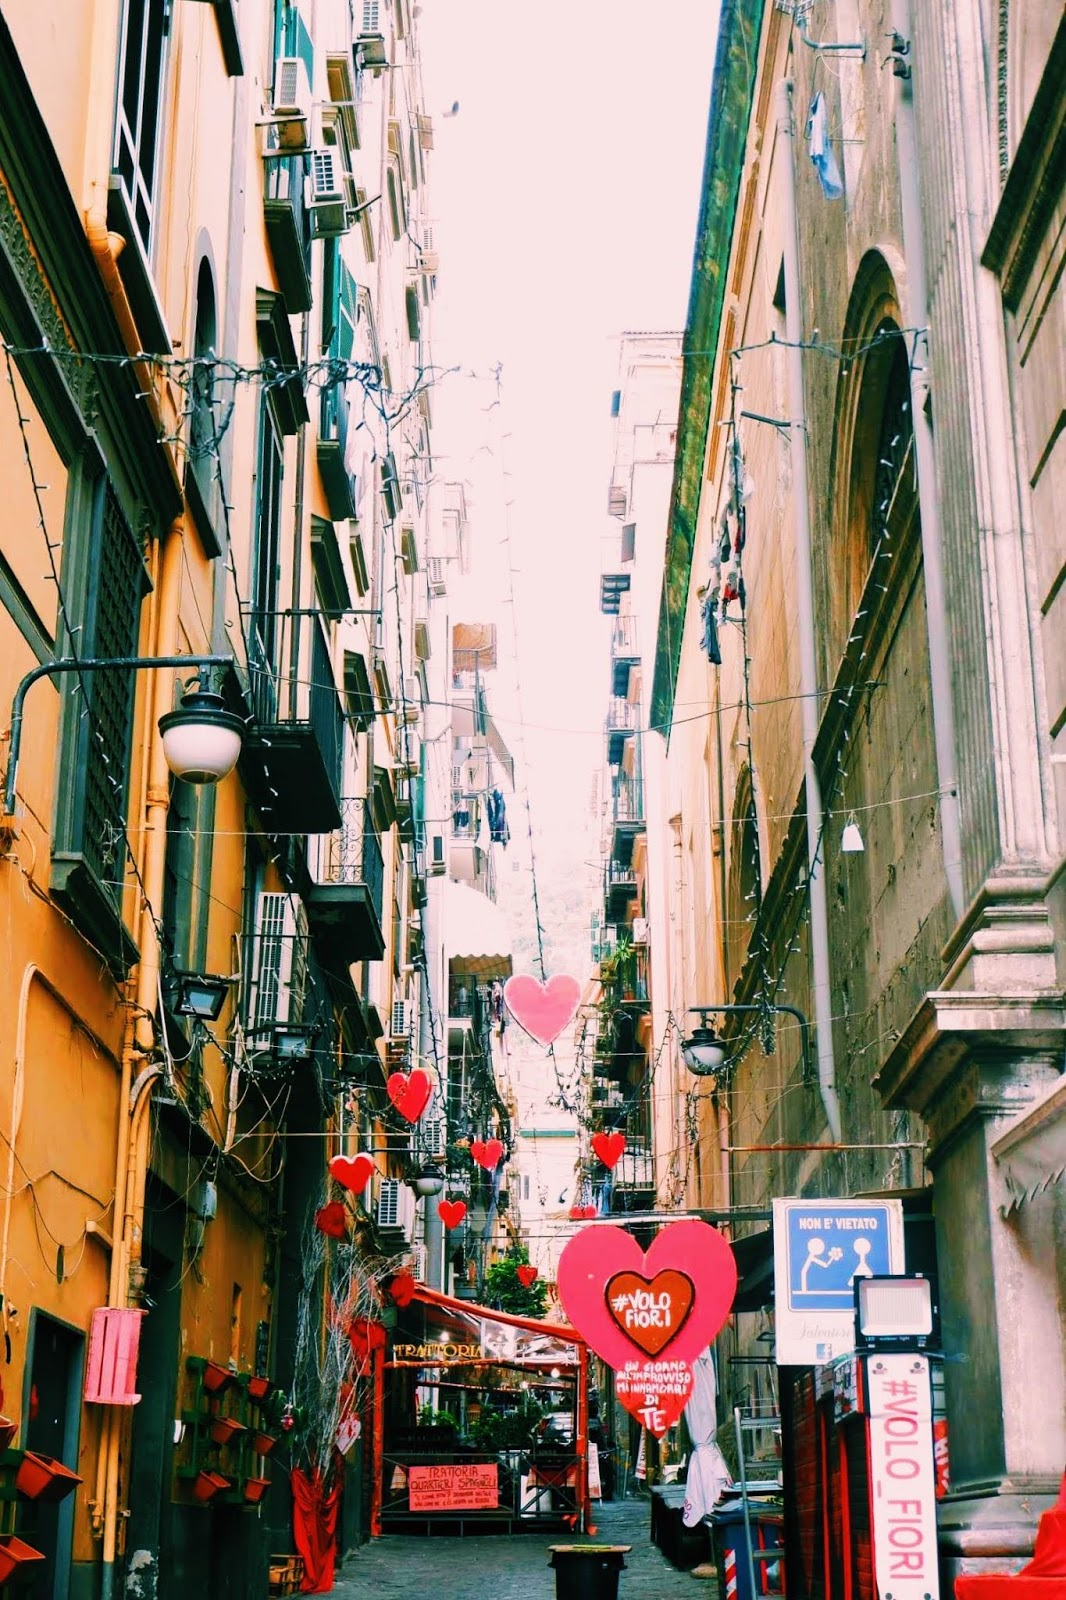 Streets in Naples, the Spanish Quarter